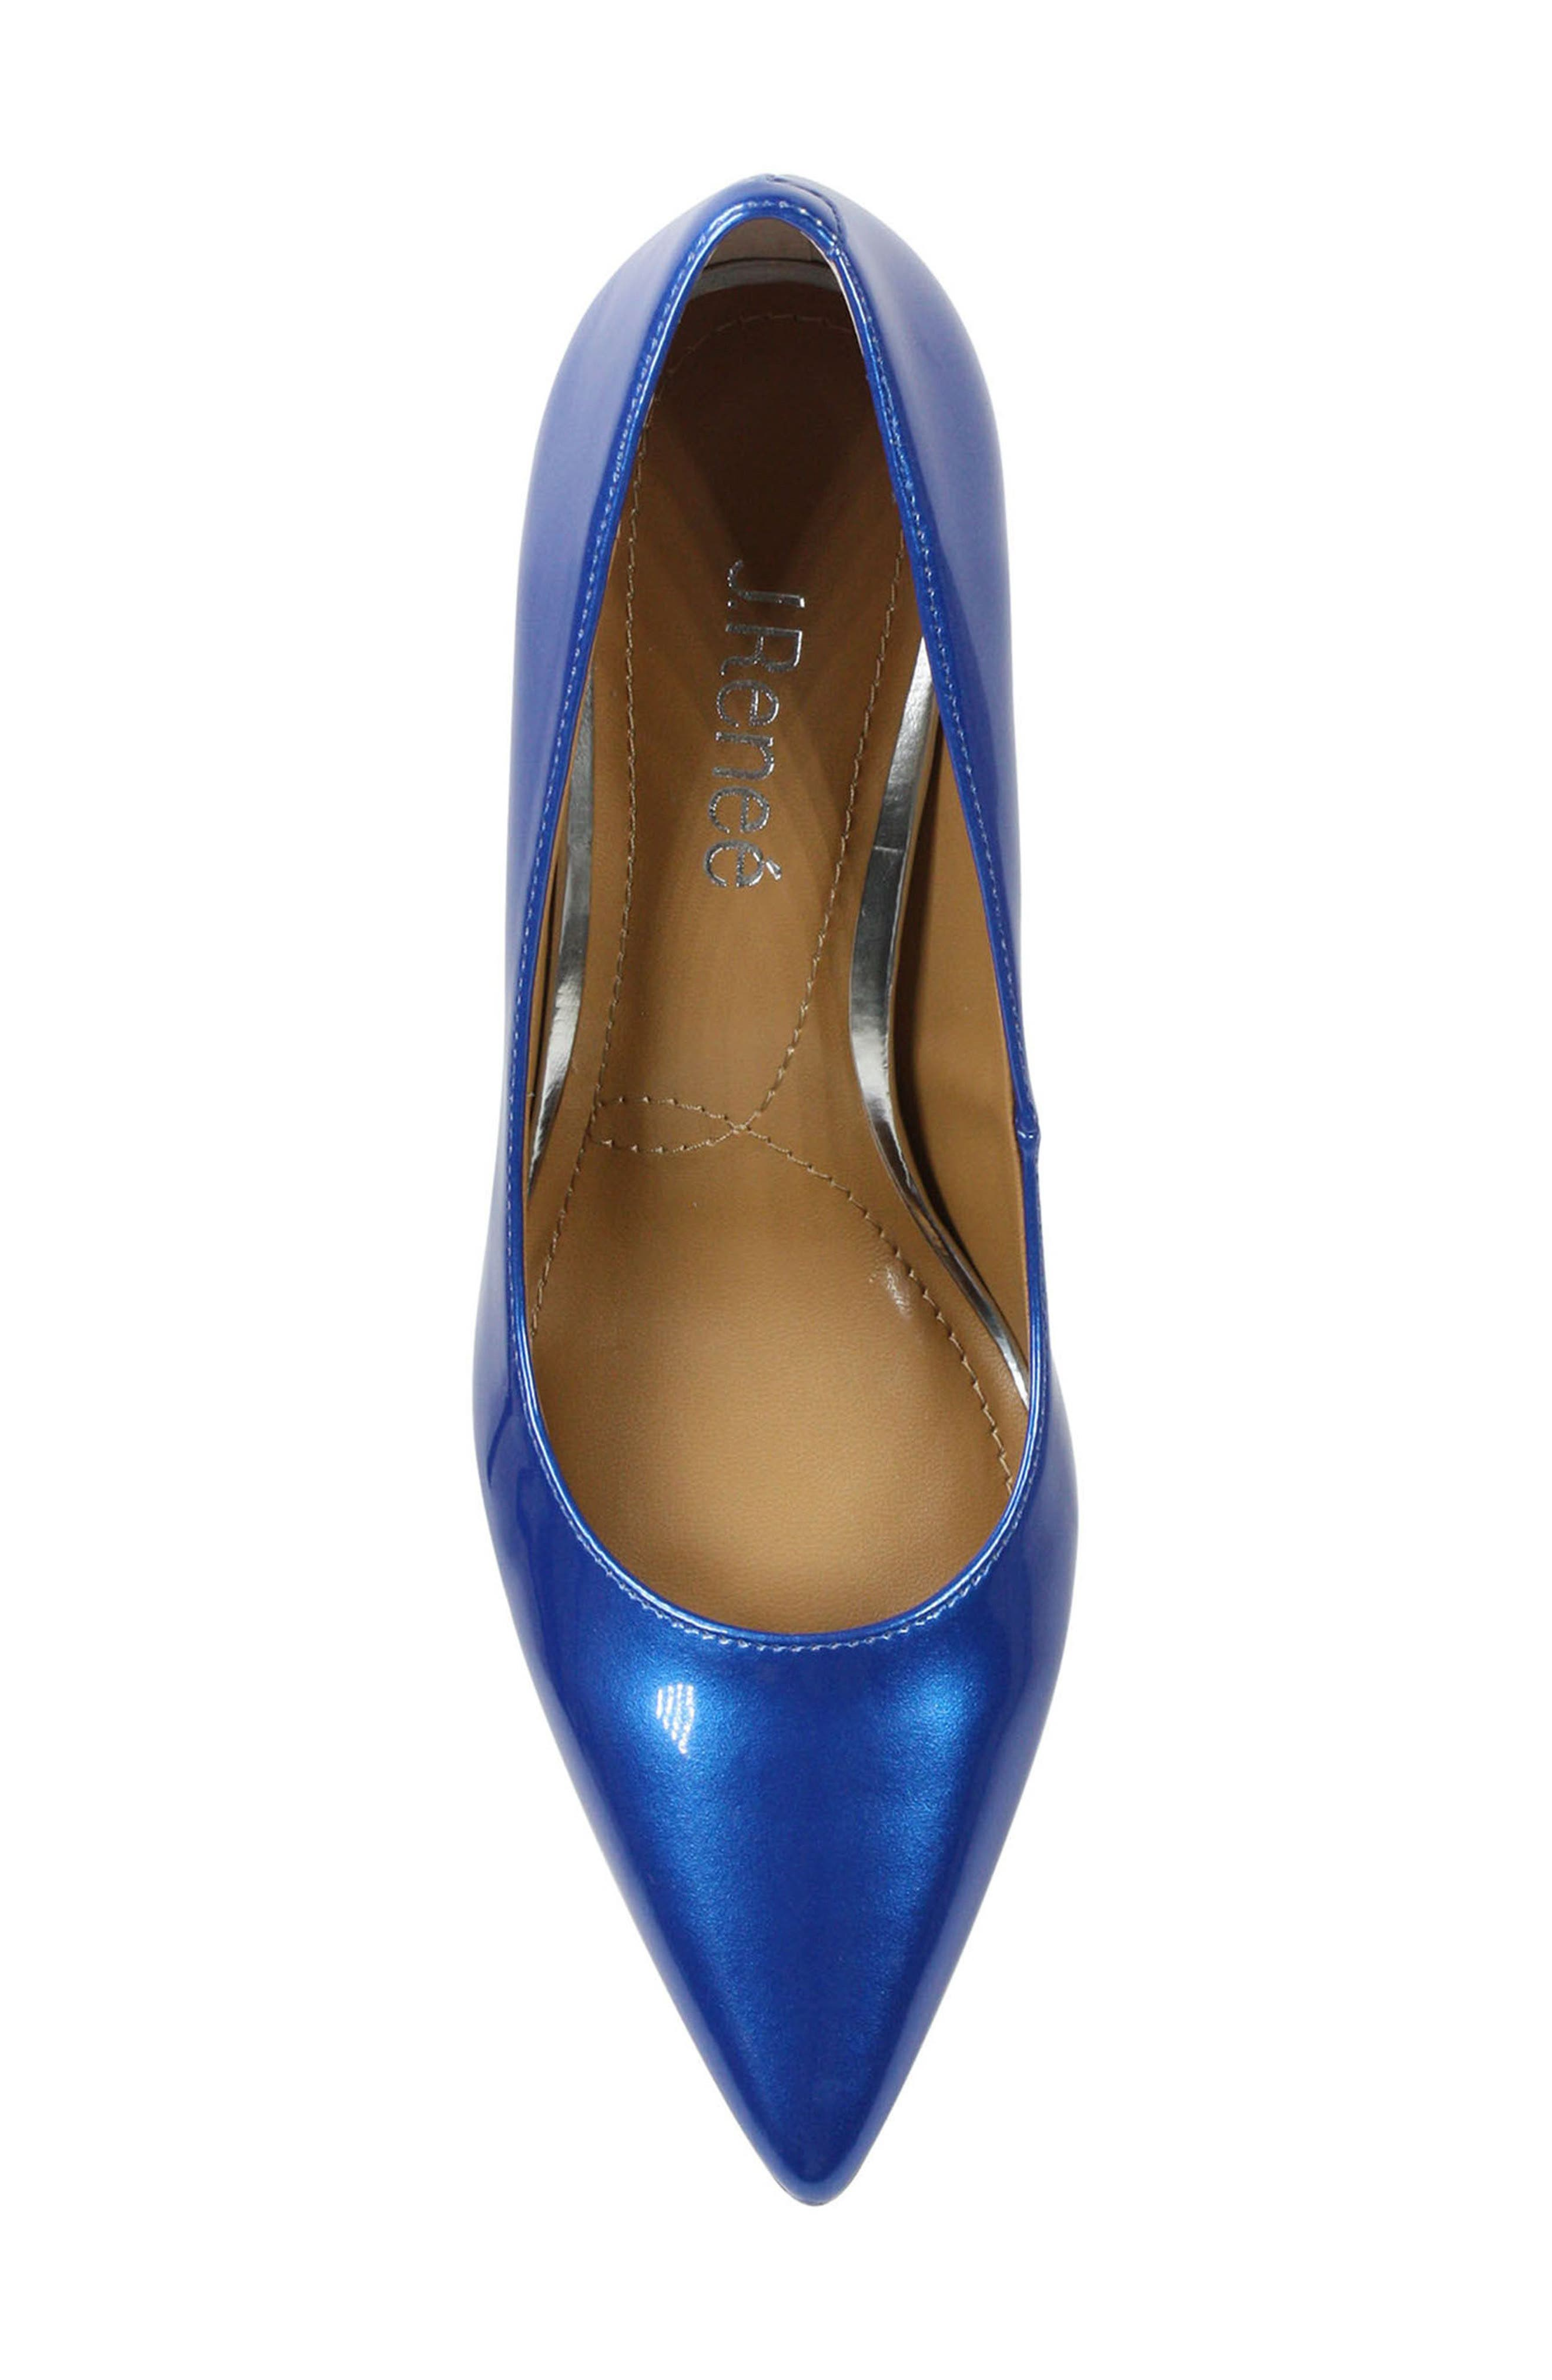 'Maressa' Pointy Toe Pump,                             Alternate thumbnail 5, color,                             Blue Patent